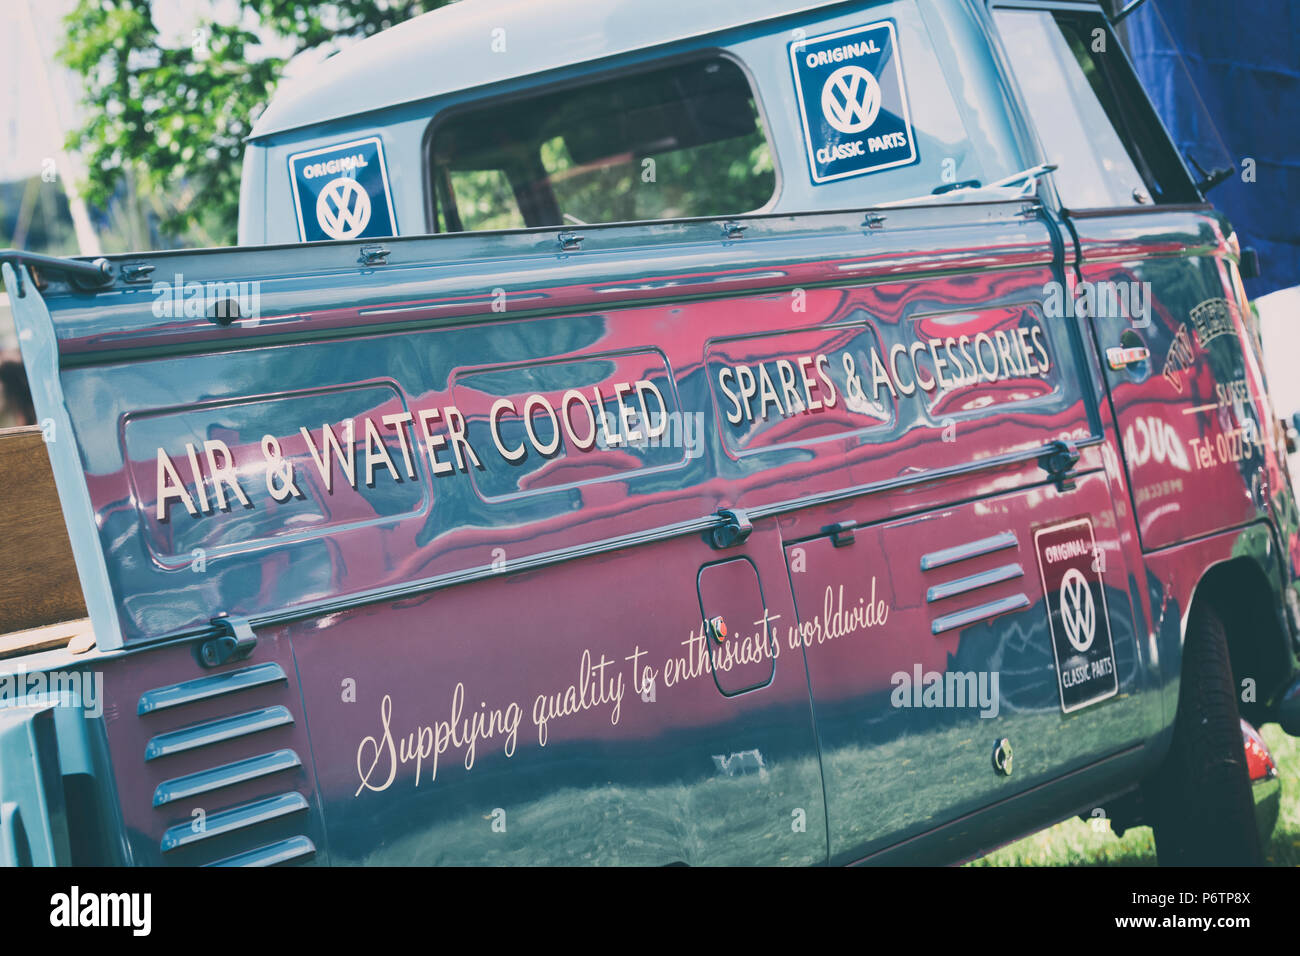 Vw Volkswagen Camper Van Single Cab Pick Up At A Vw Show Stoner Park Oxfordshire England Vintage Filter Applied Stock Photo Alamy